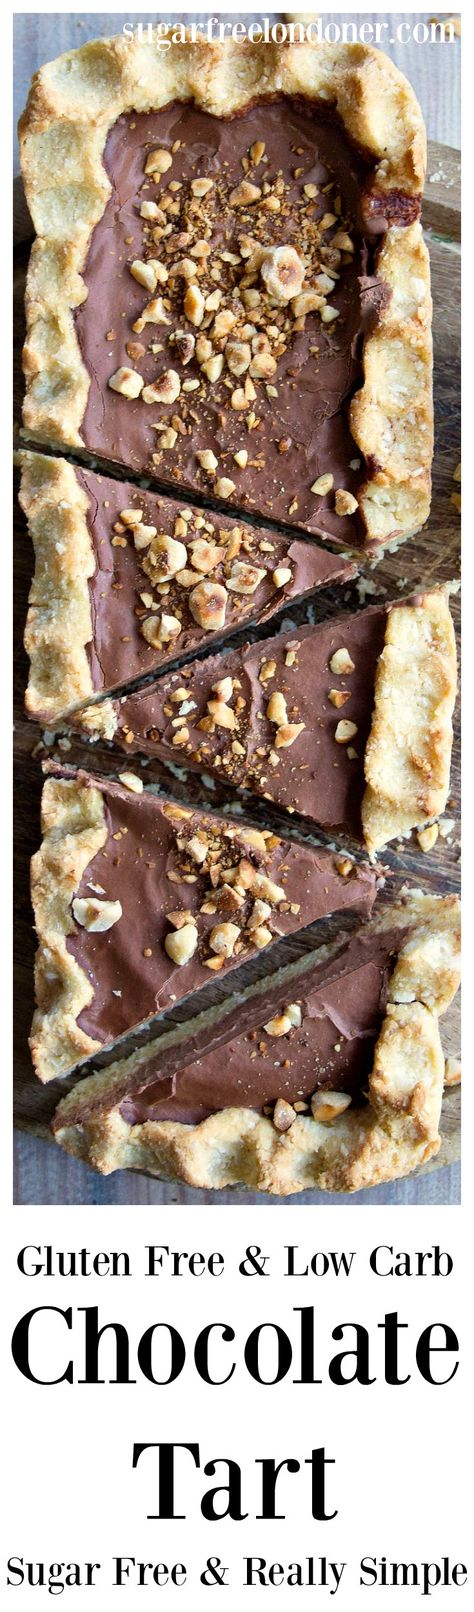 This really easyand decadently creamy low carb chocolate tart is assembled in minutes. It is gluten free, keto and sugar free. #chocolatetart #chocolatepie #lowcarb